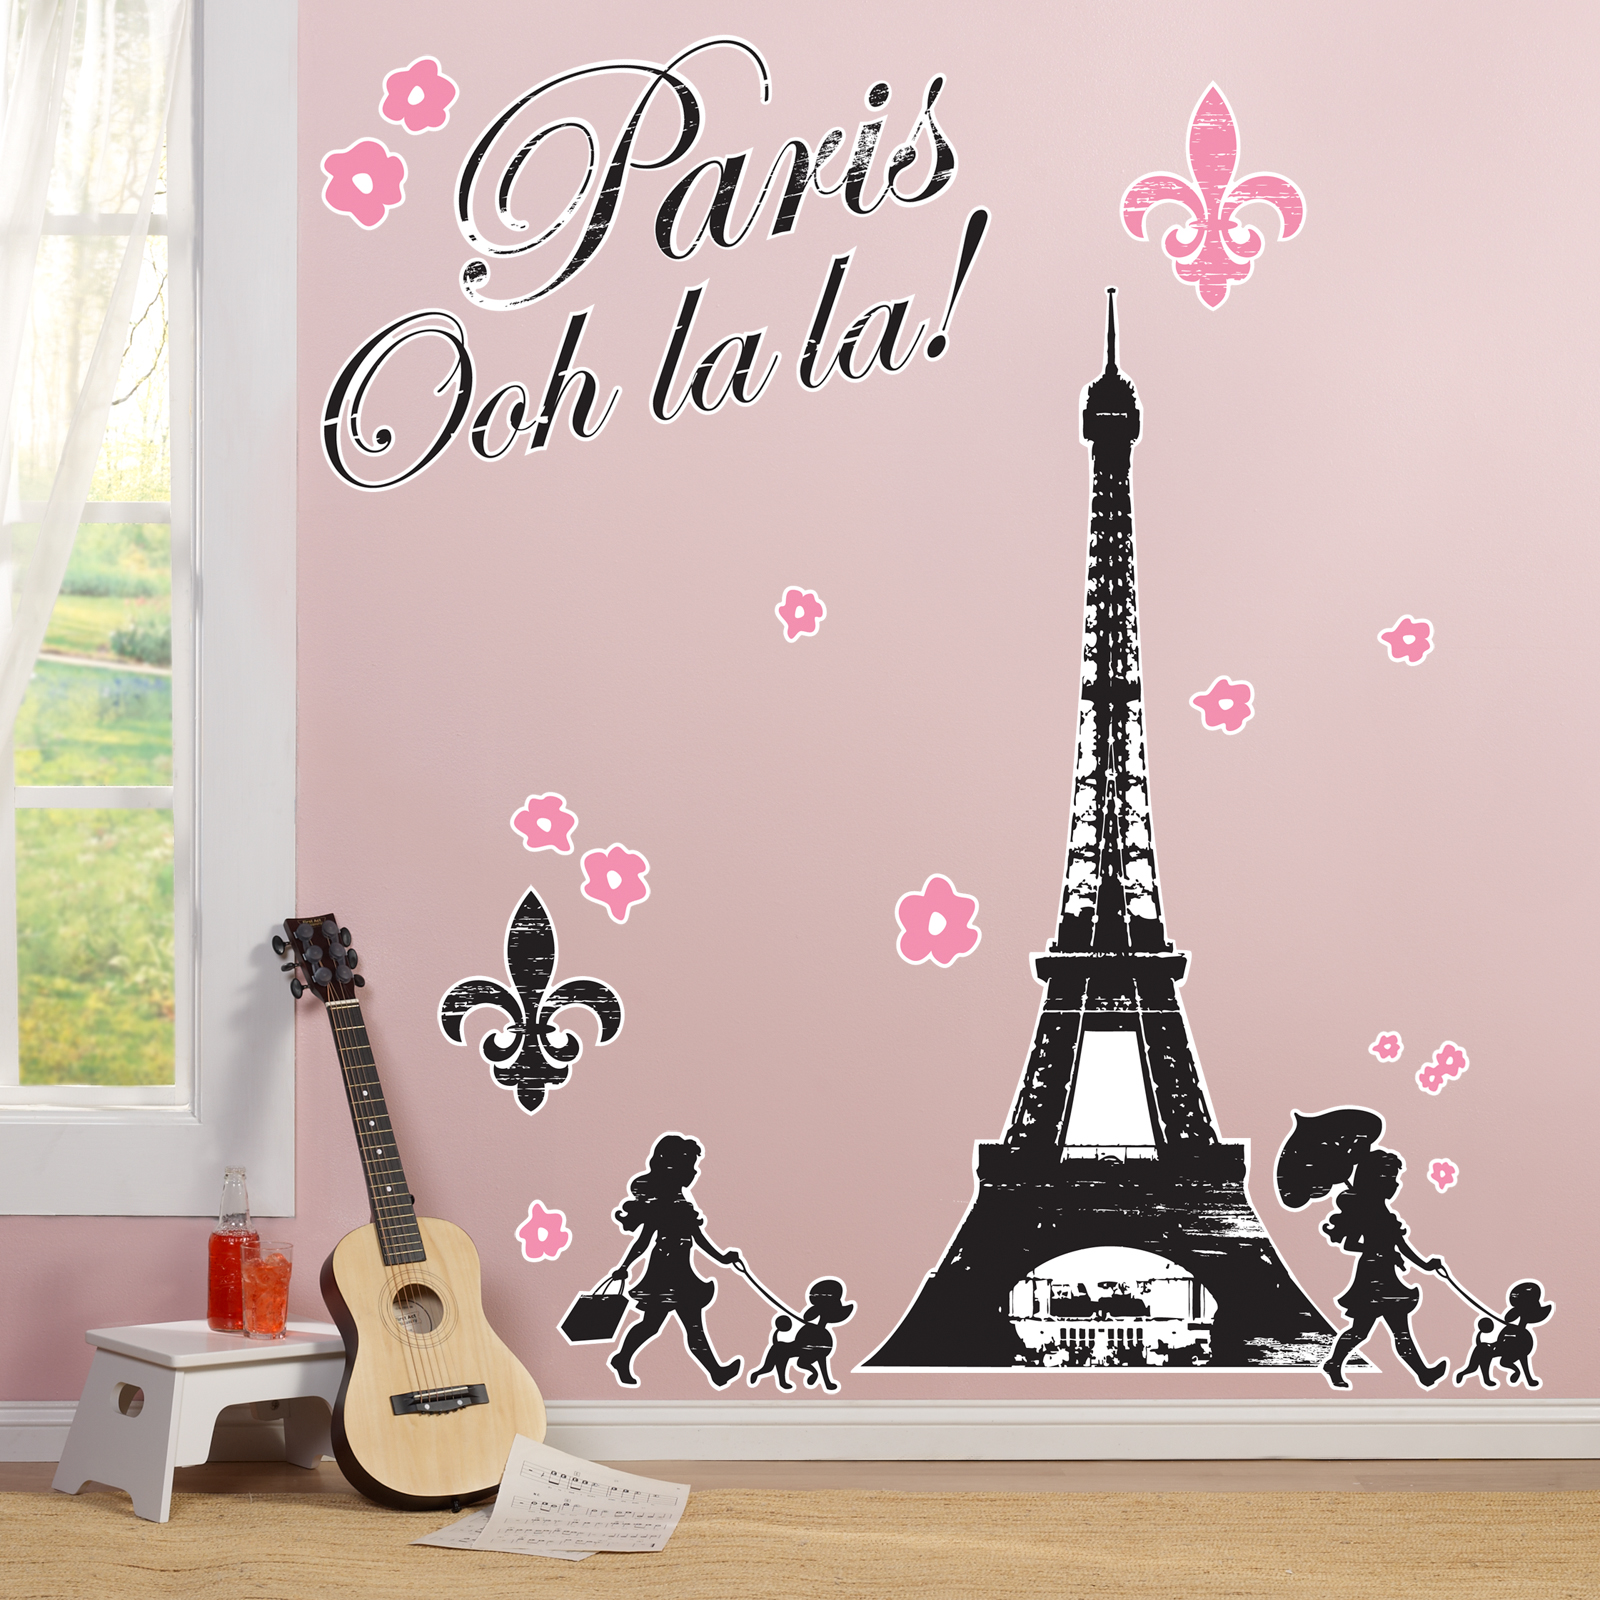 Paris Damask Giant Wall Decals Part 14